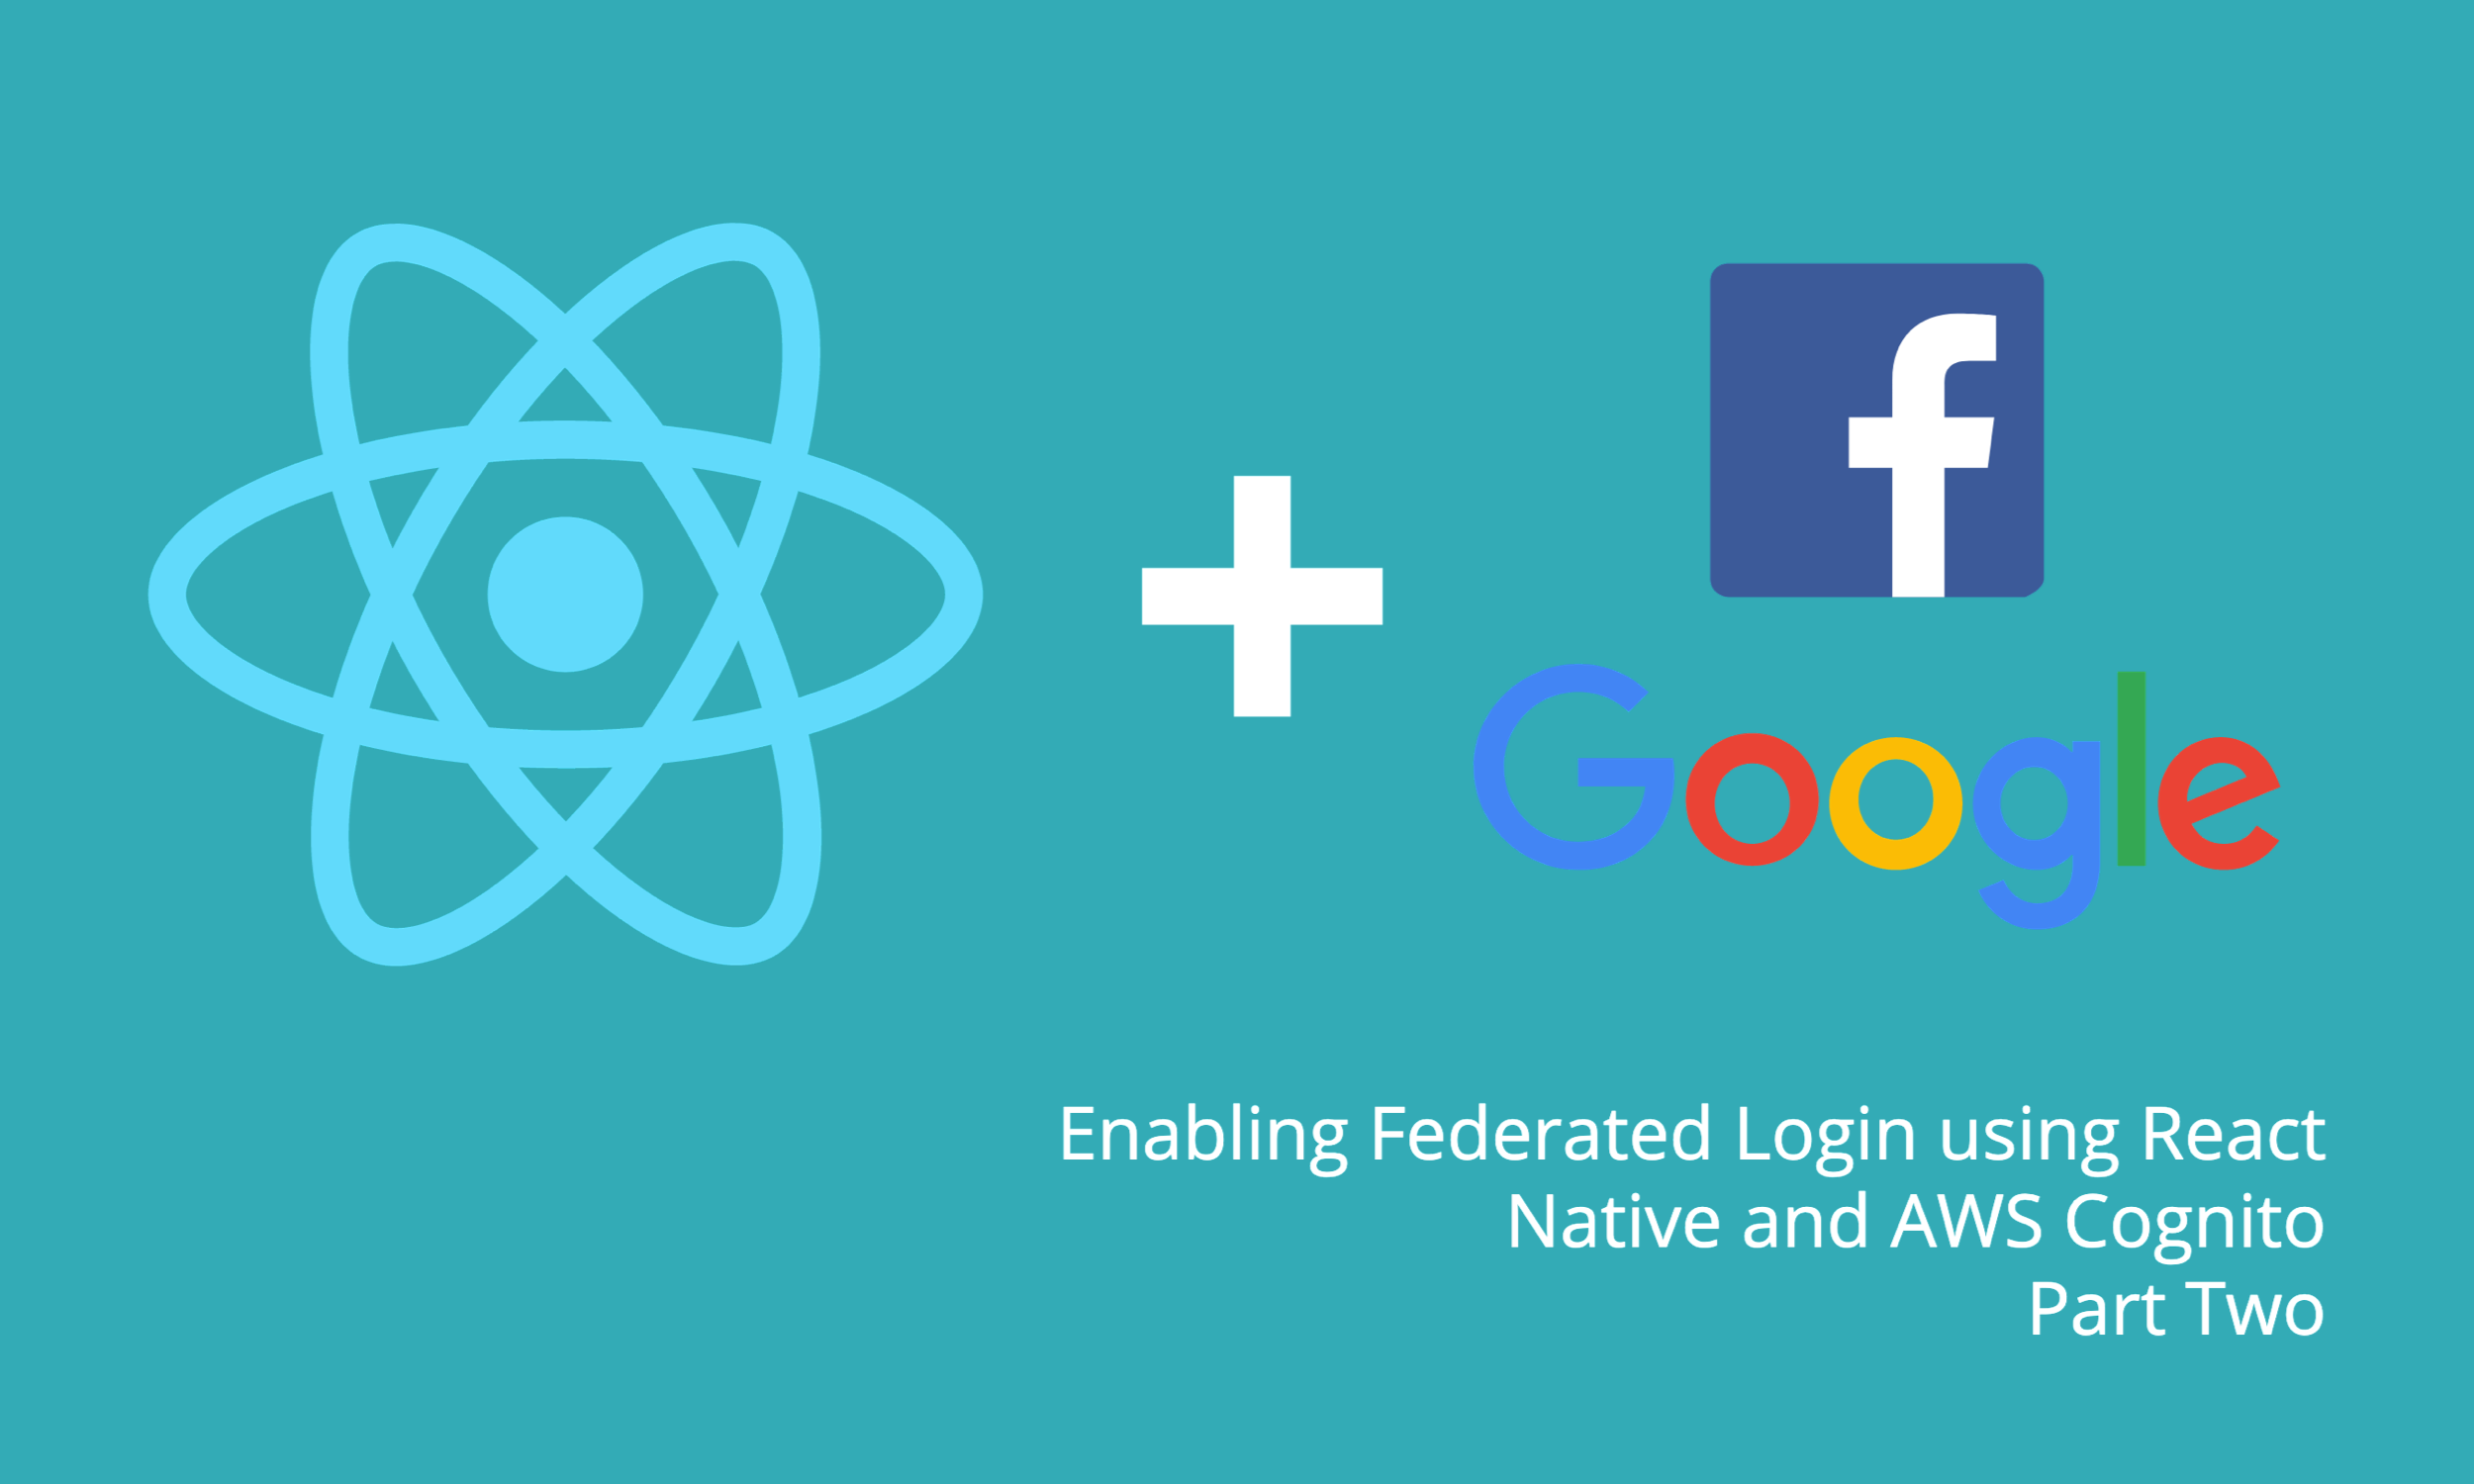 Setting up AWS Cognito and React Native to enable Federated